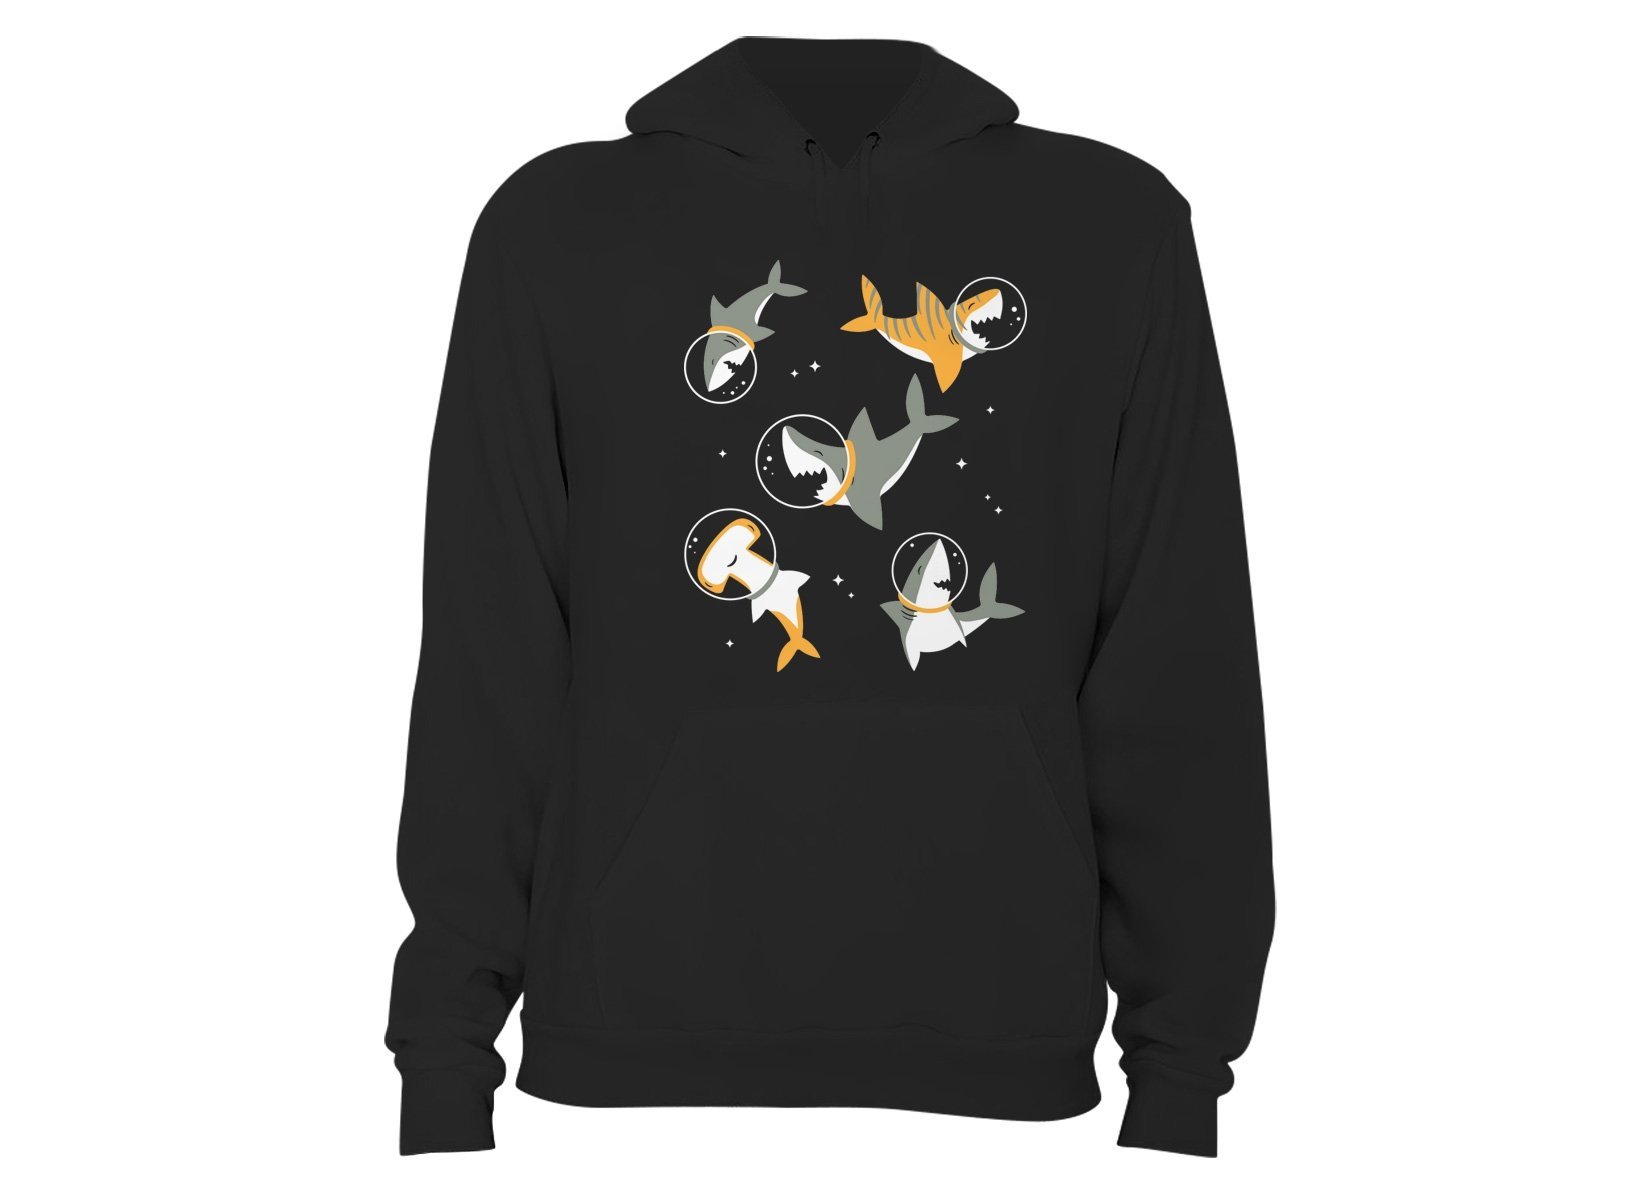 Sharks In Space on Hoodie